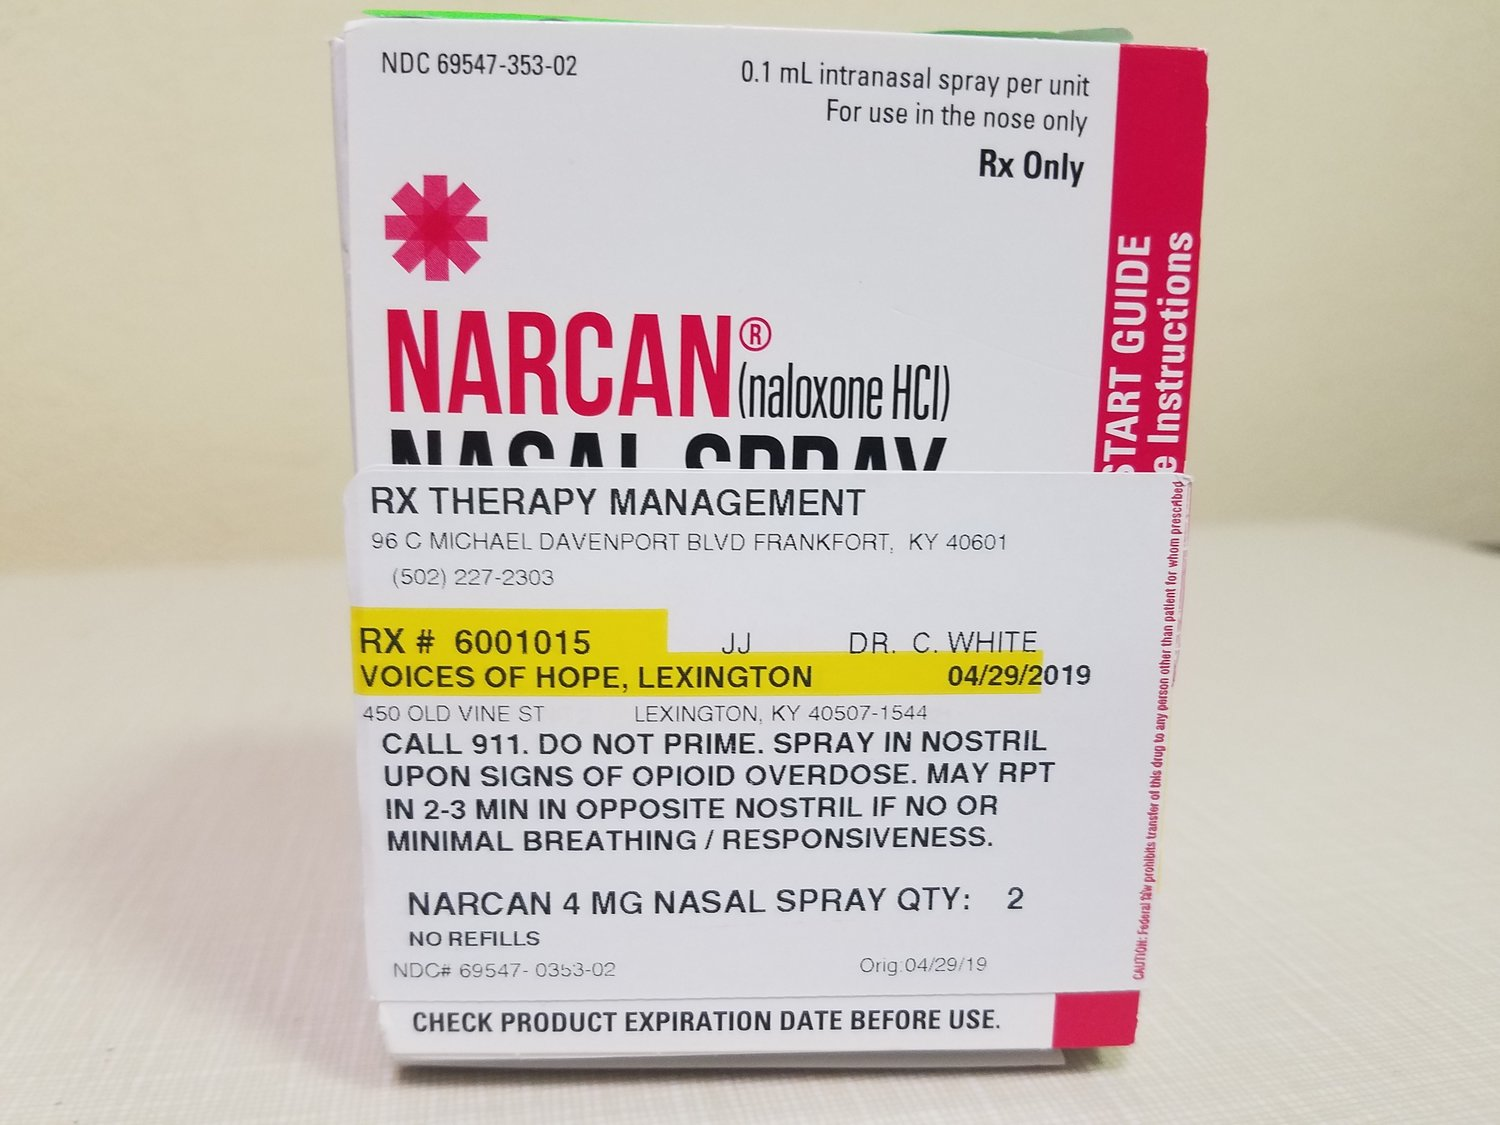 Anyone can learn how to give life-saving doses of NARCAN..